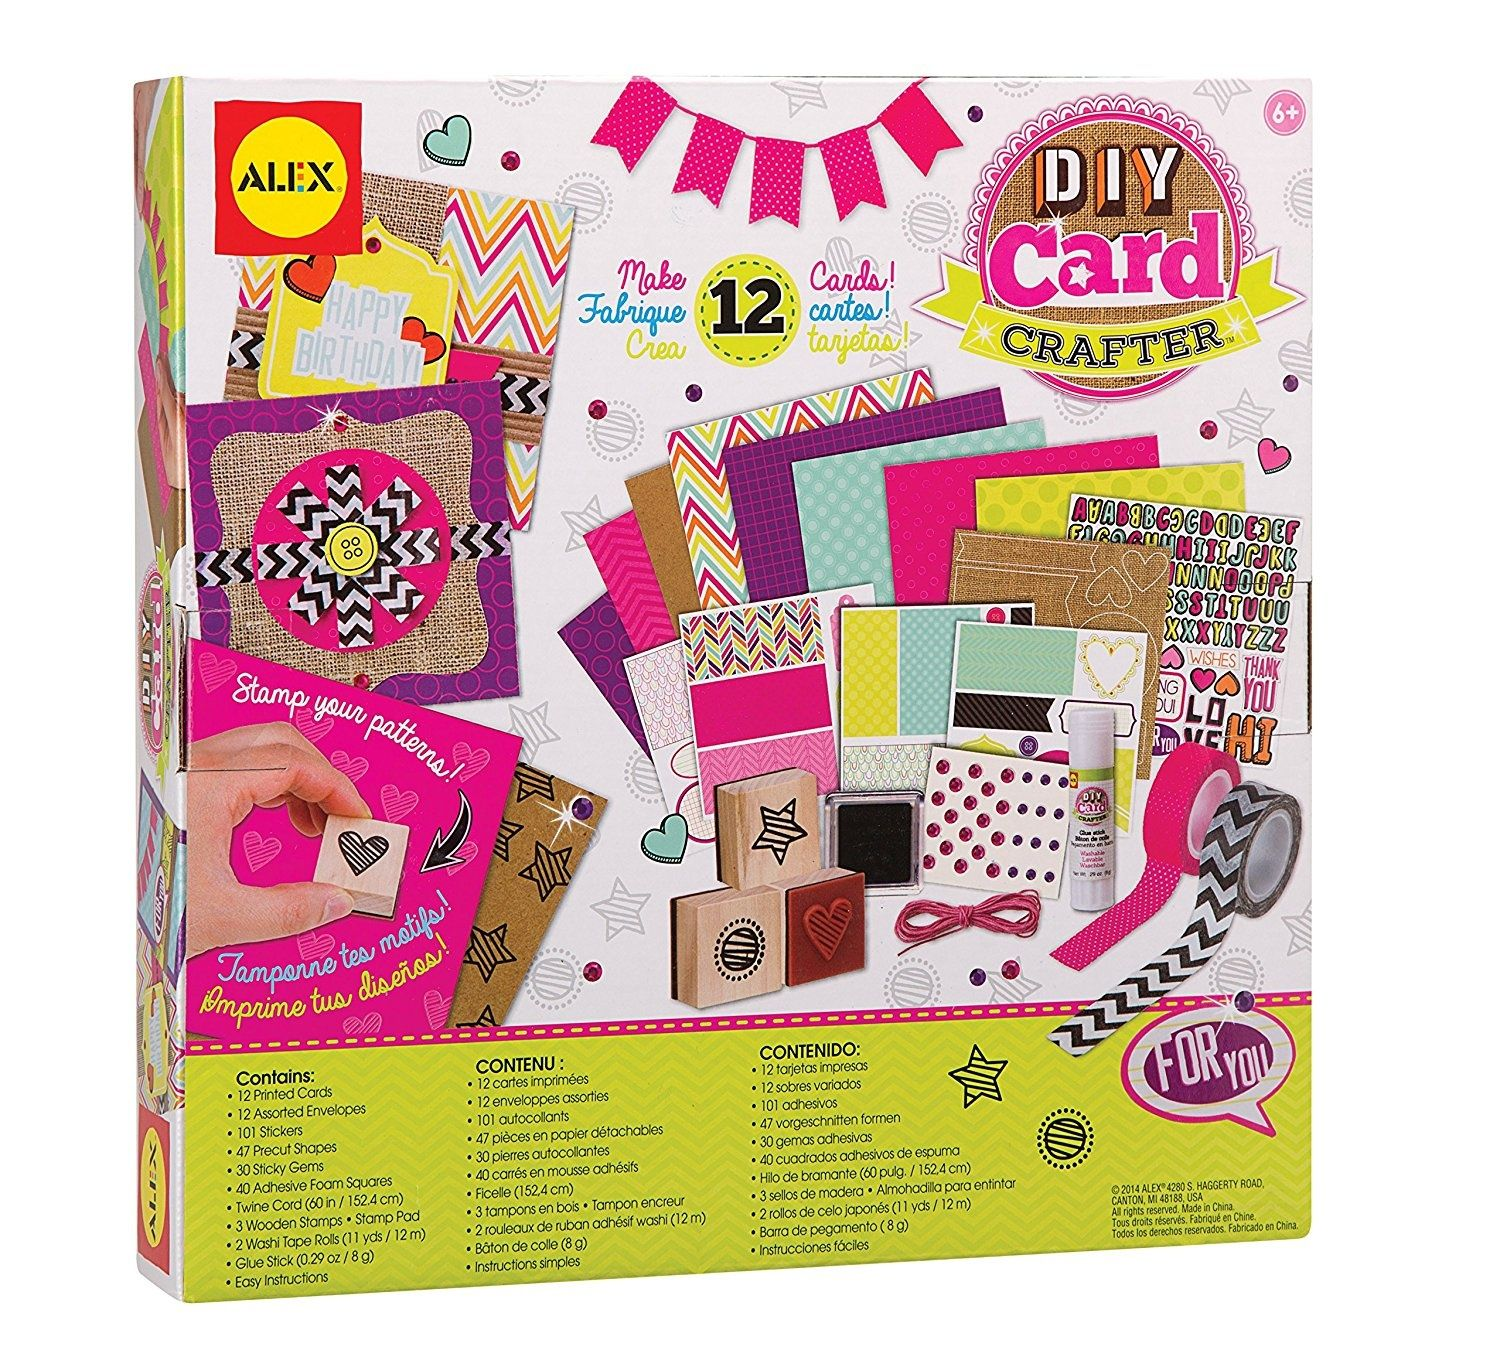 3 X Toys Craft Do It Yourself Card Crafter Card Kits Kits For Kids Toy Craft